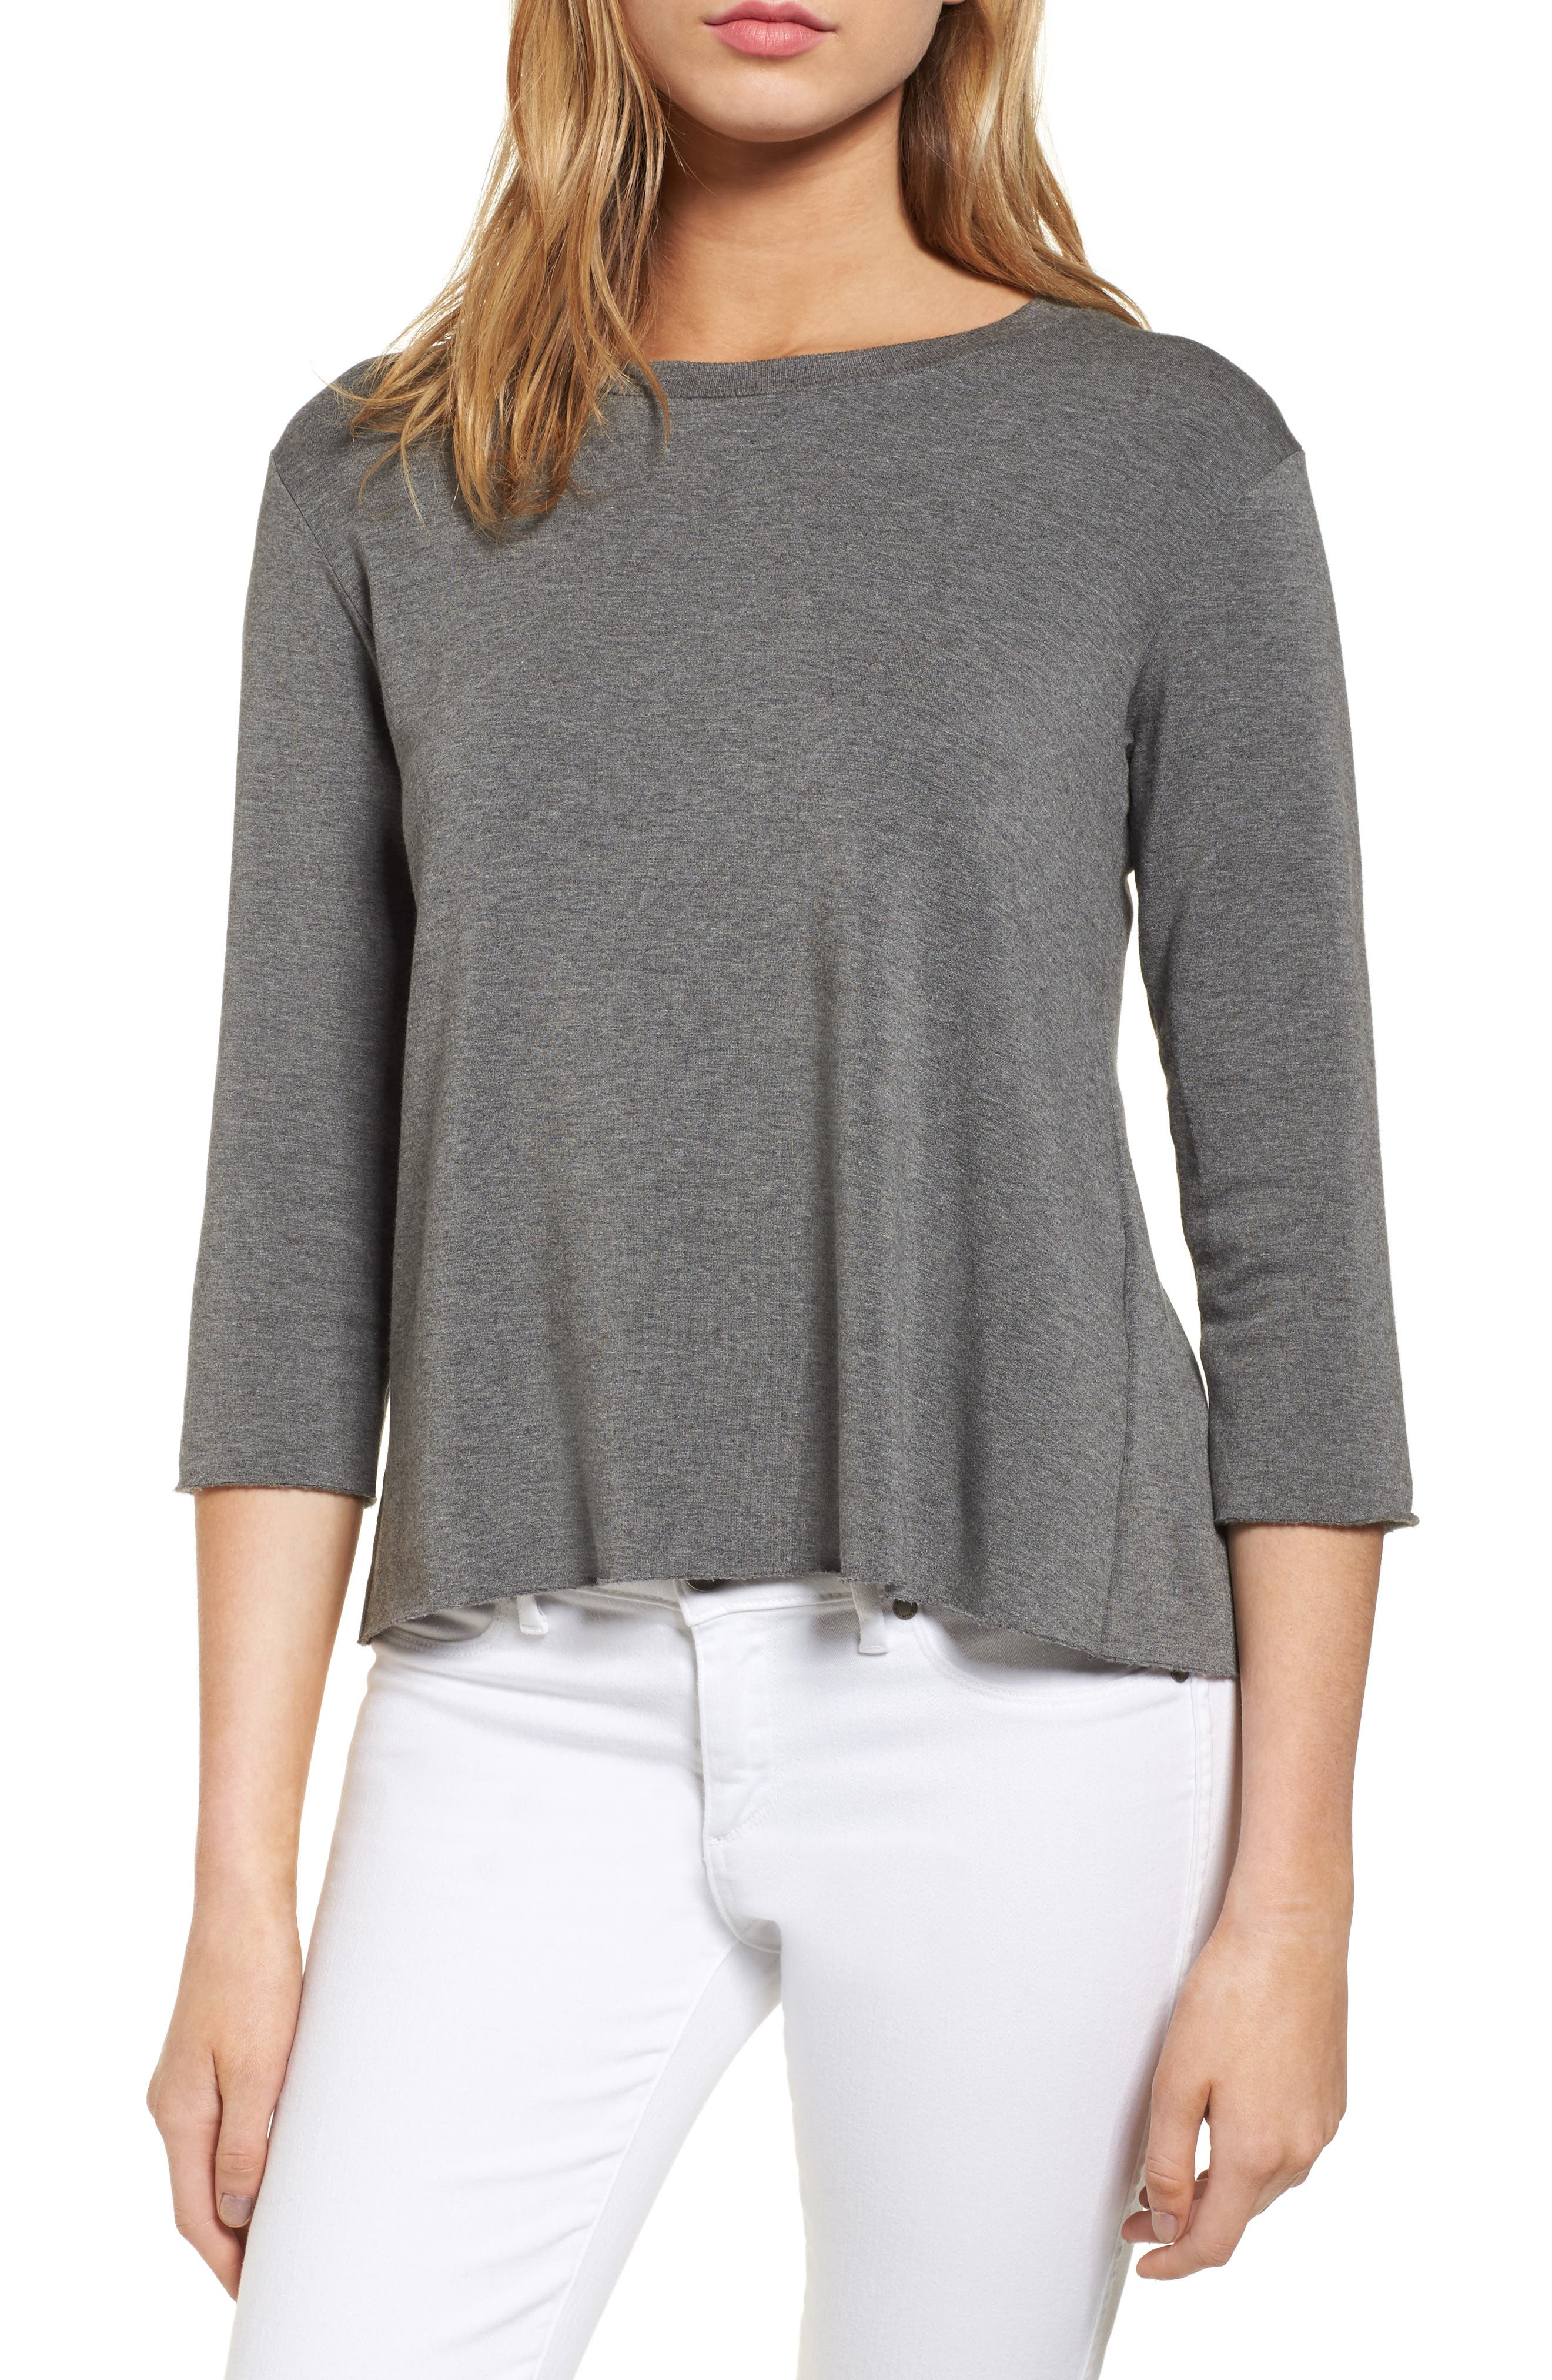 Main Image - Bailey 44 Frappe Tie Back Sweater